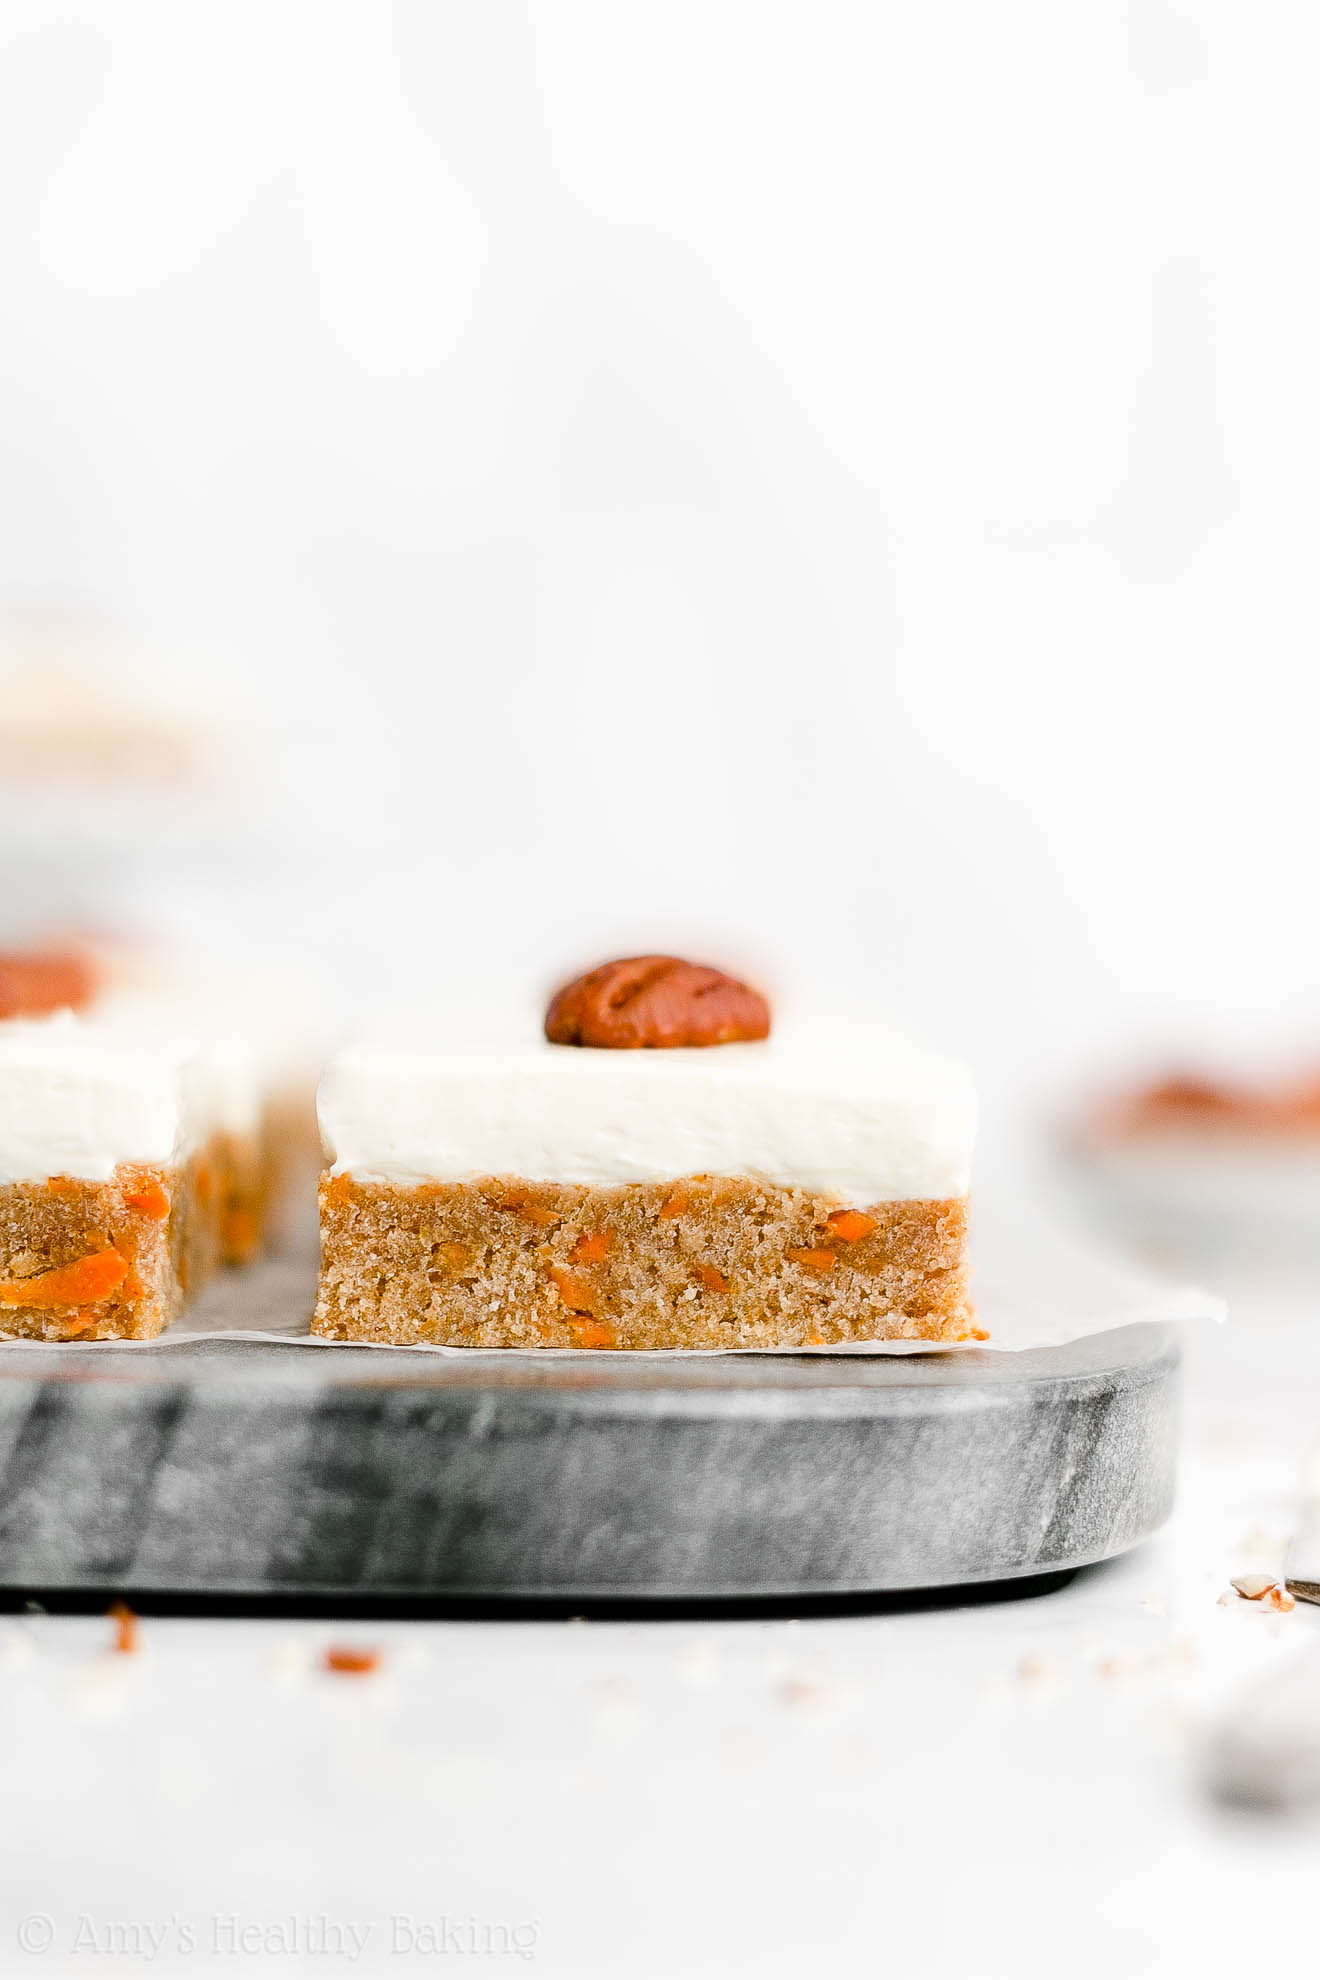 Easy Healthy Homemade Low Fat Clean Eating Carrot Cake Cookie Bars